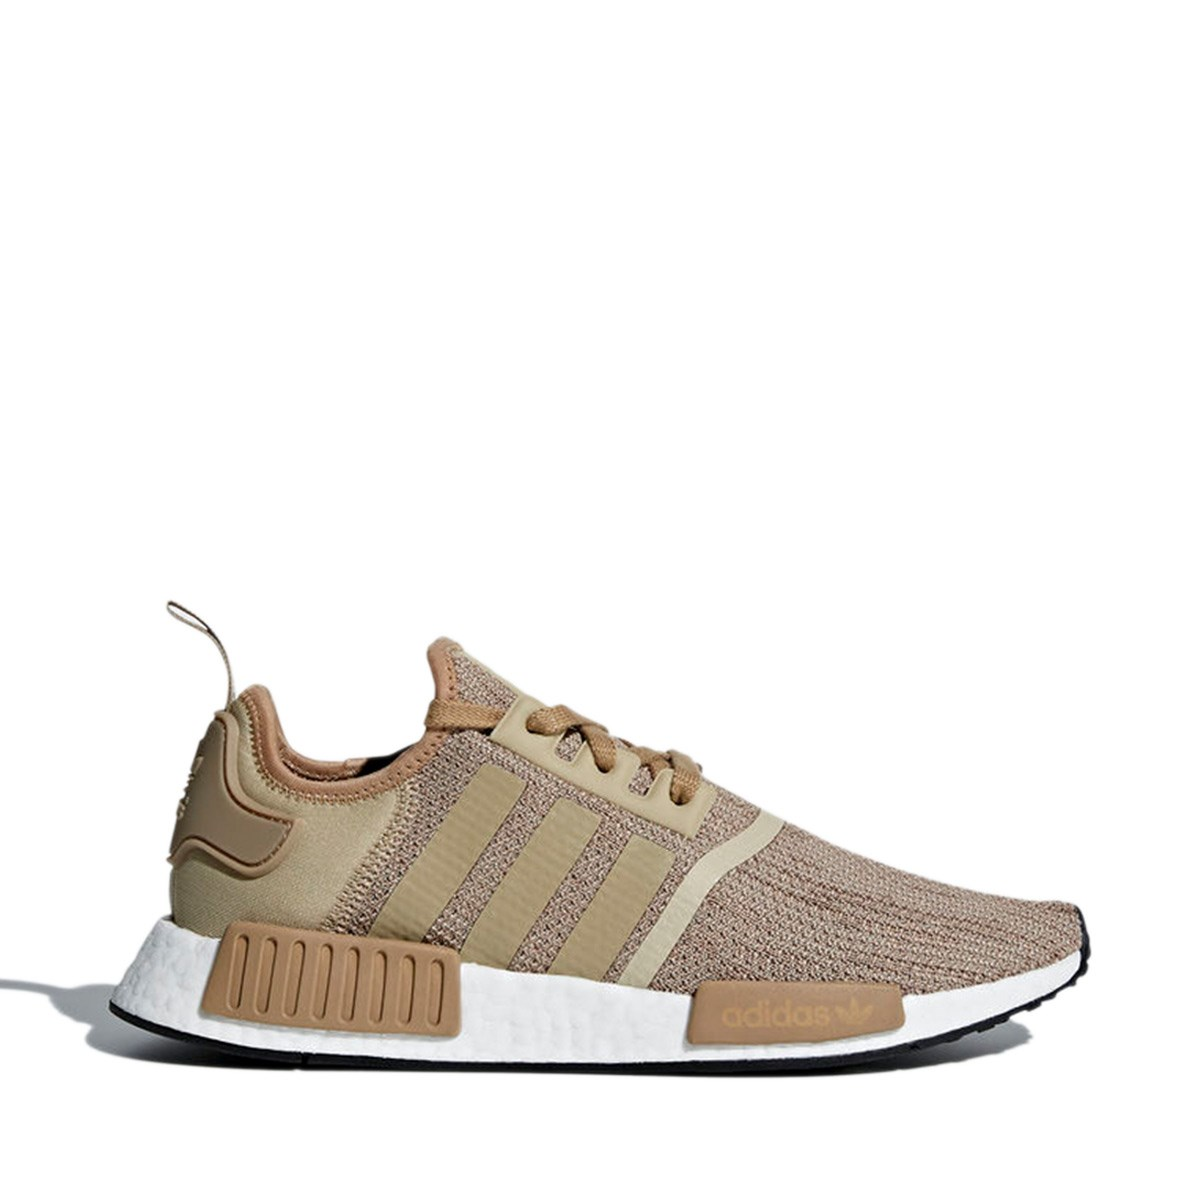 new product 3dba0 1ce21 Mens NMD R1 Raw Gold Sneaker. Previous. default view ...